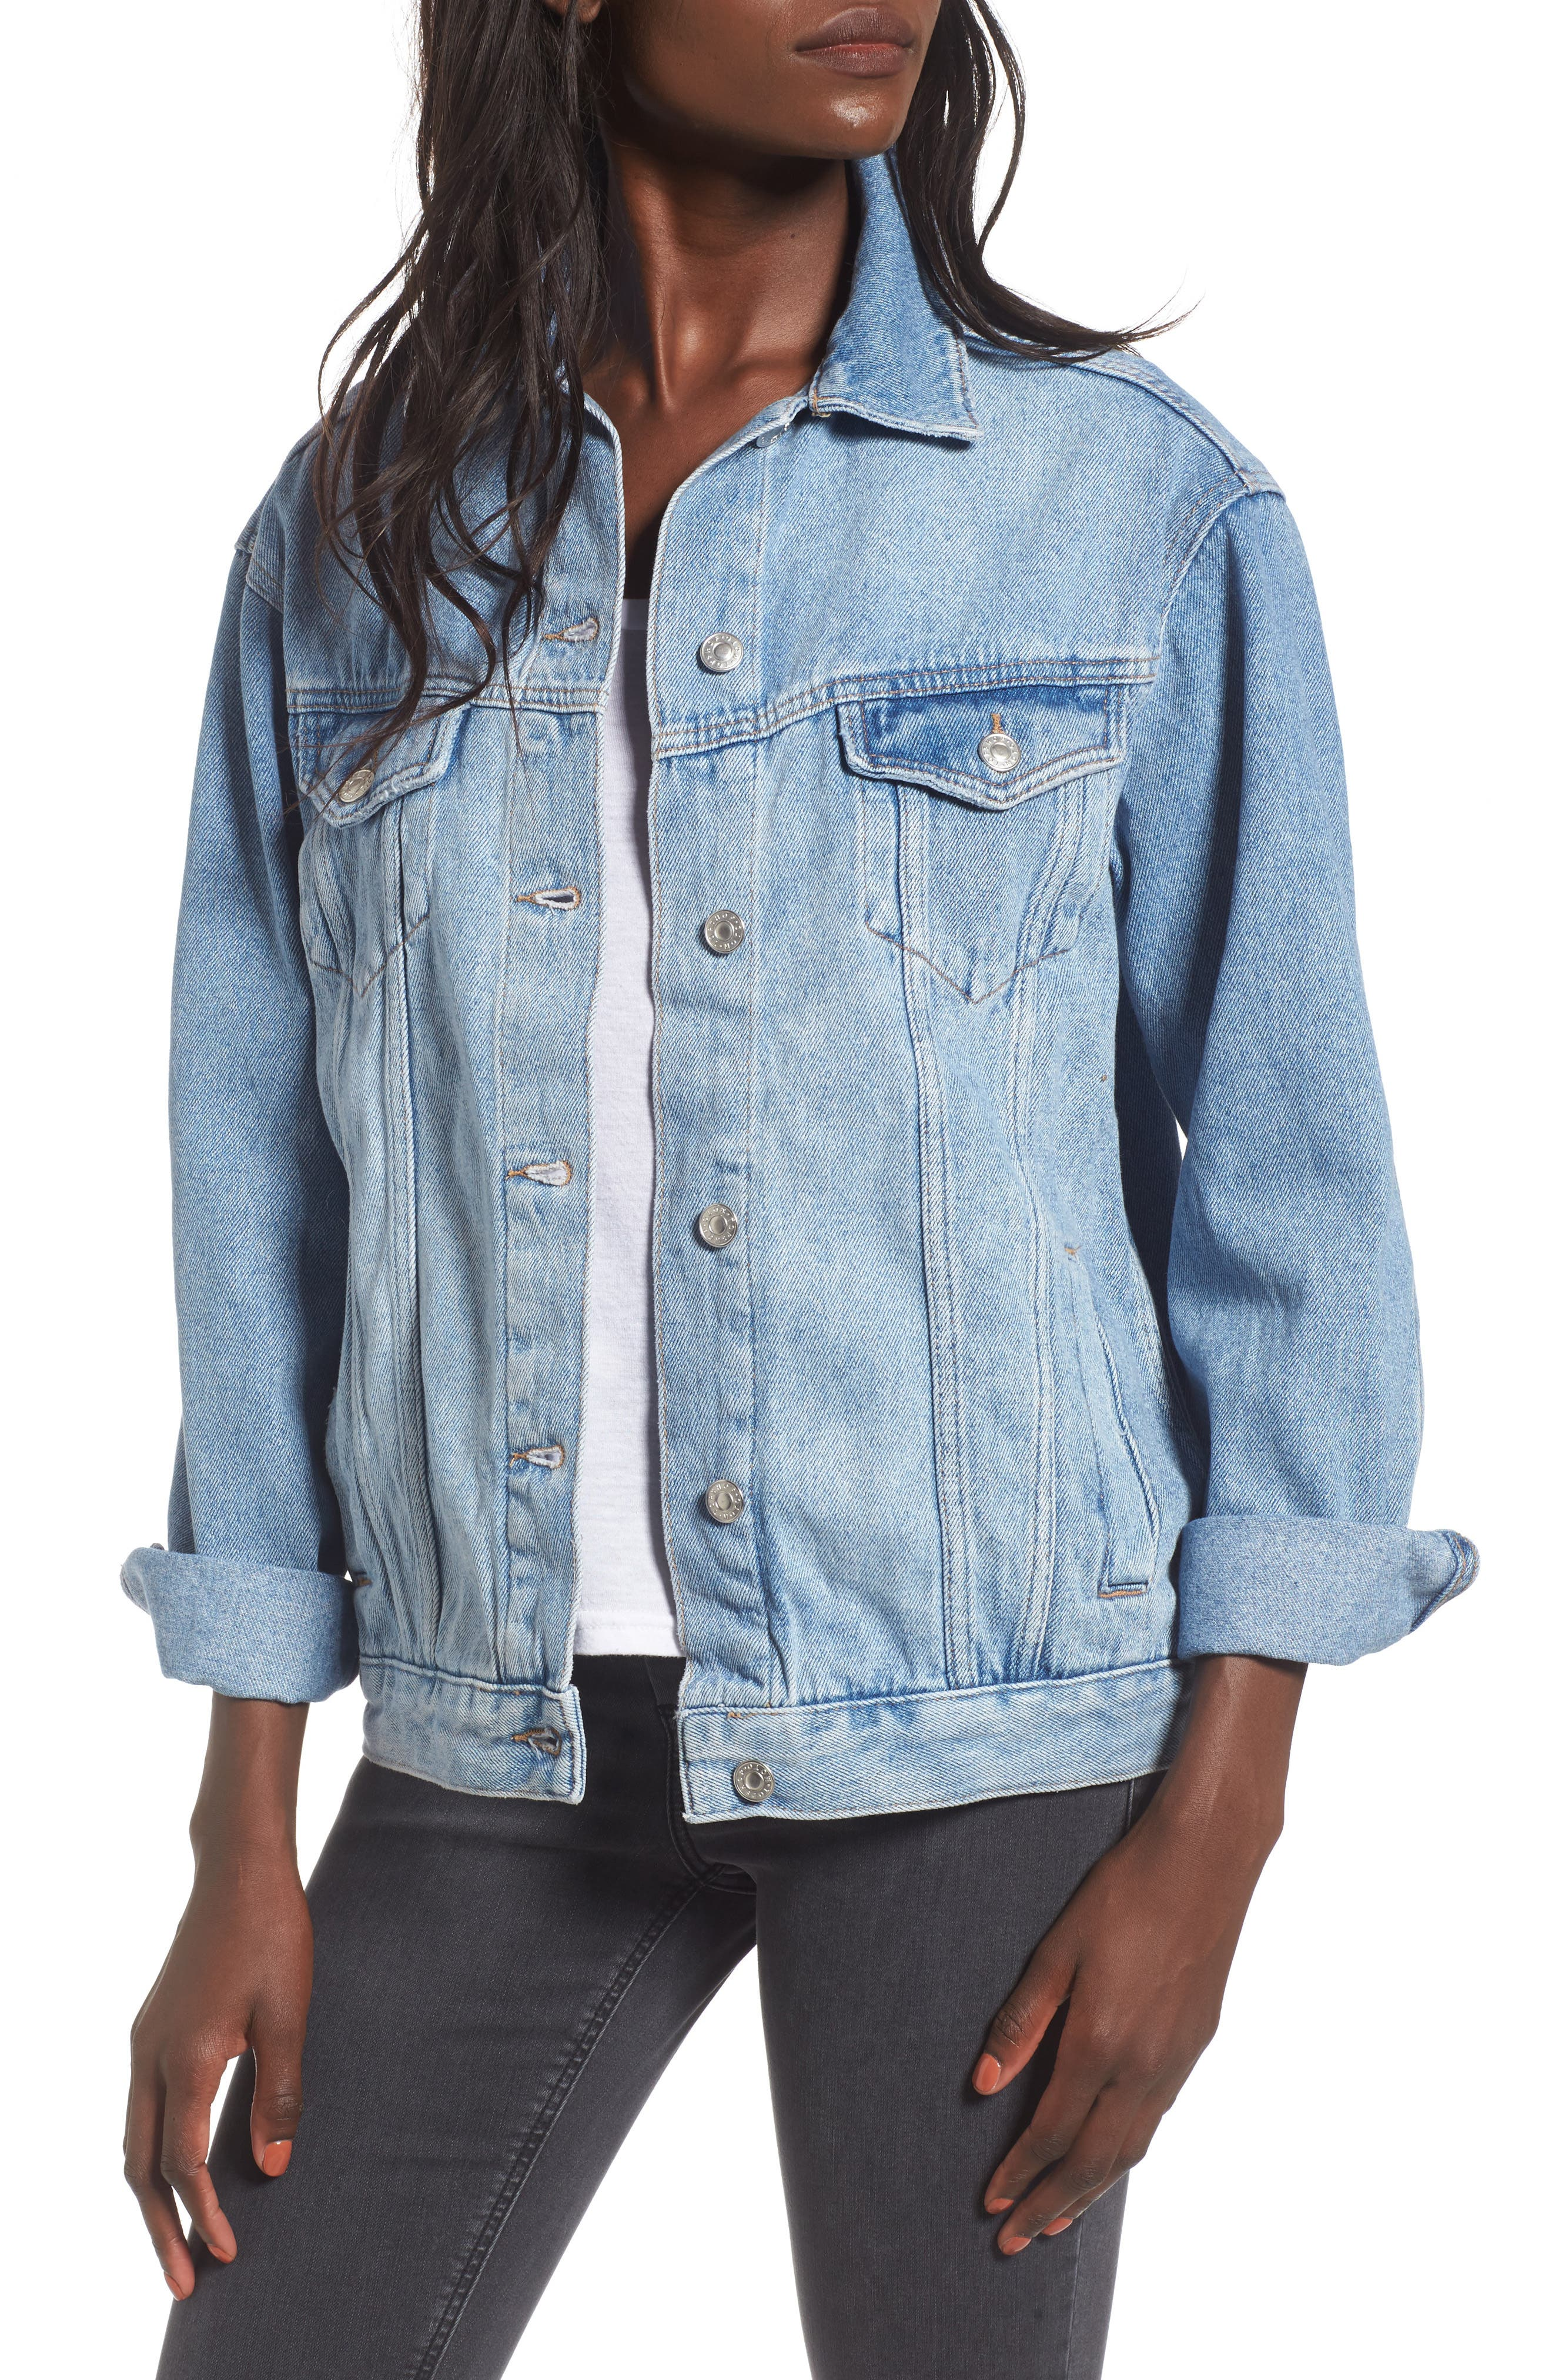 Topshop Studded Floral Denim Jacket